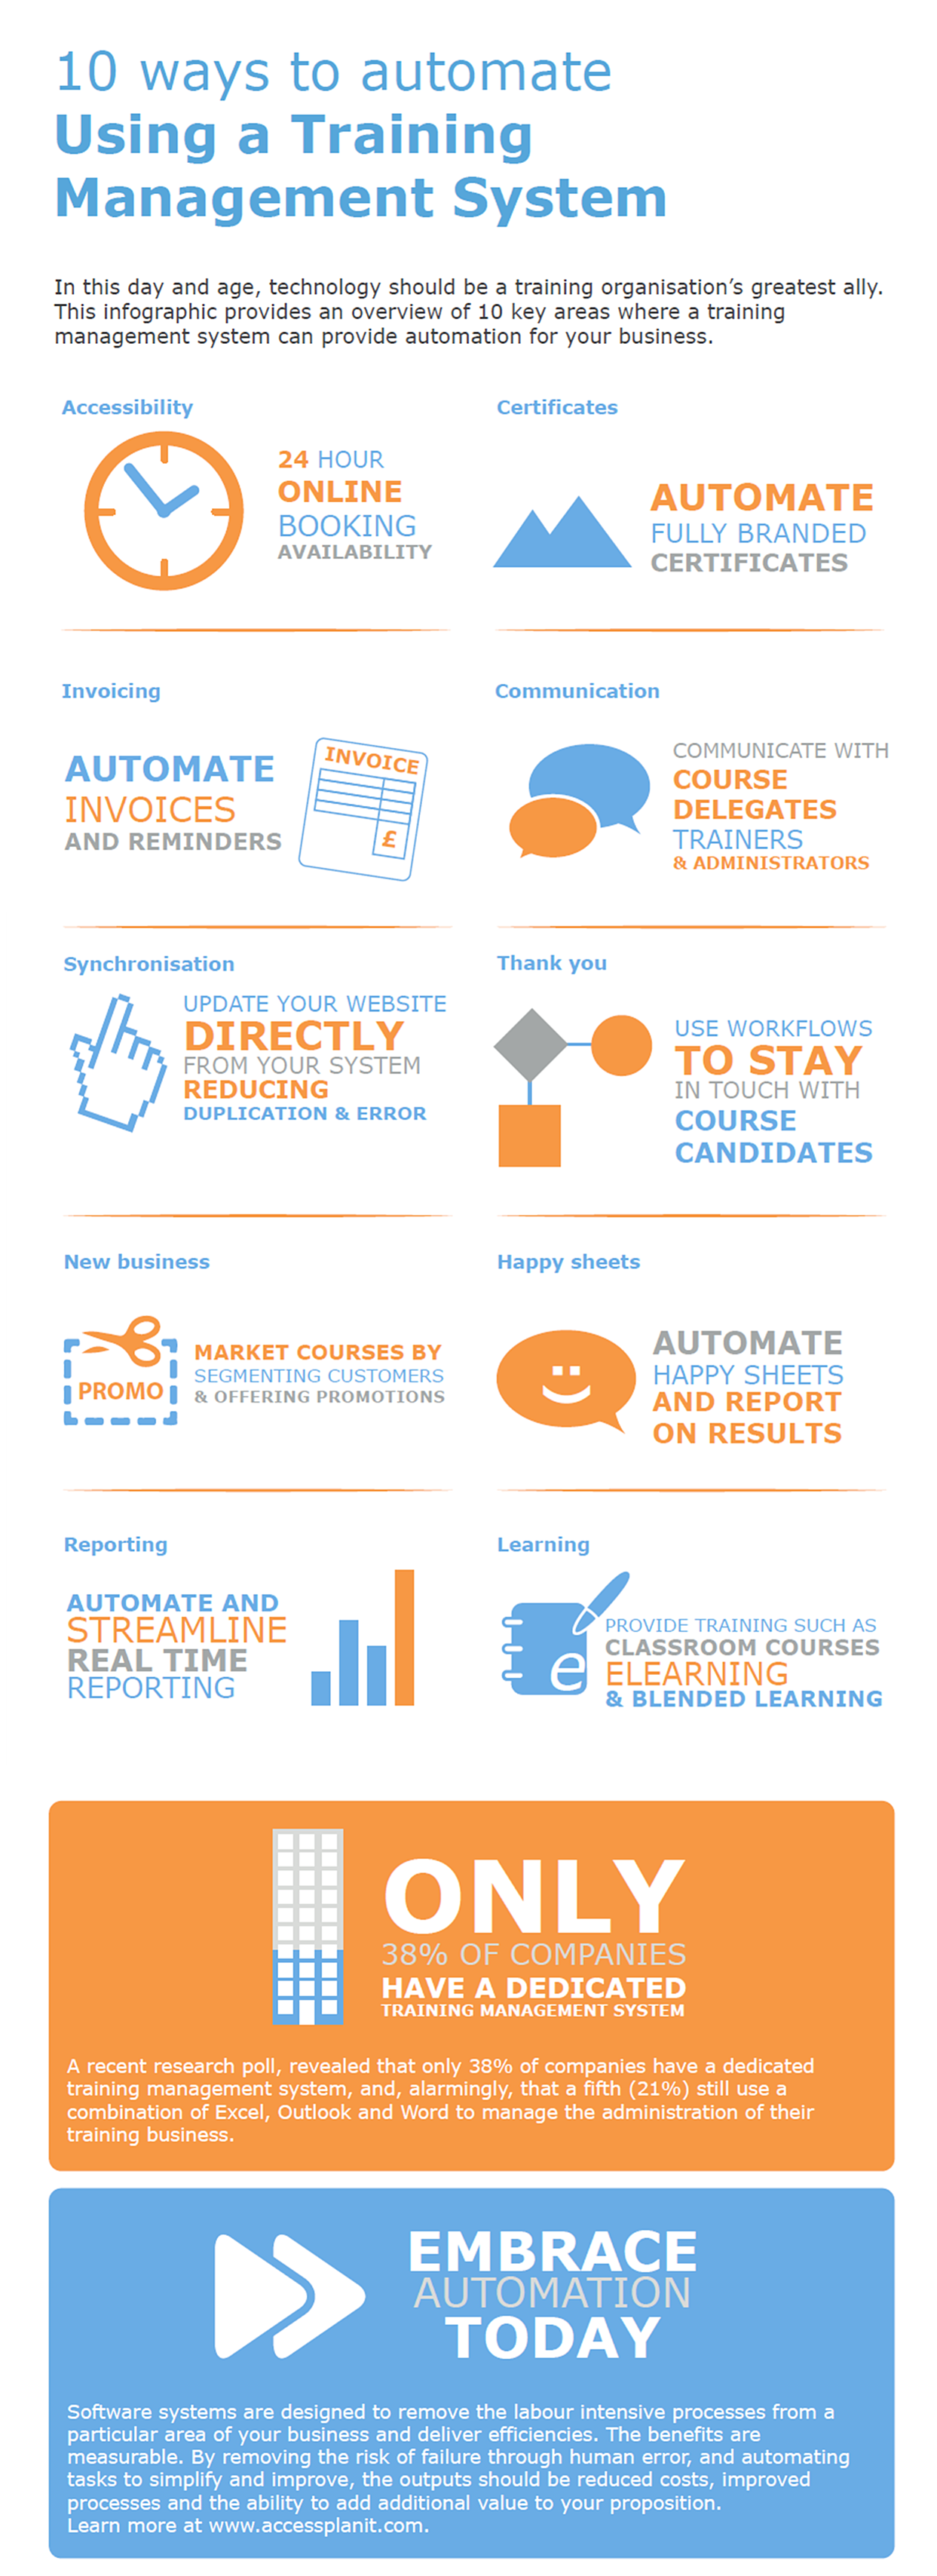 10 ways to automate using a training management system infographic